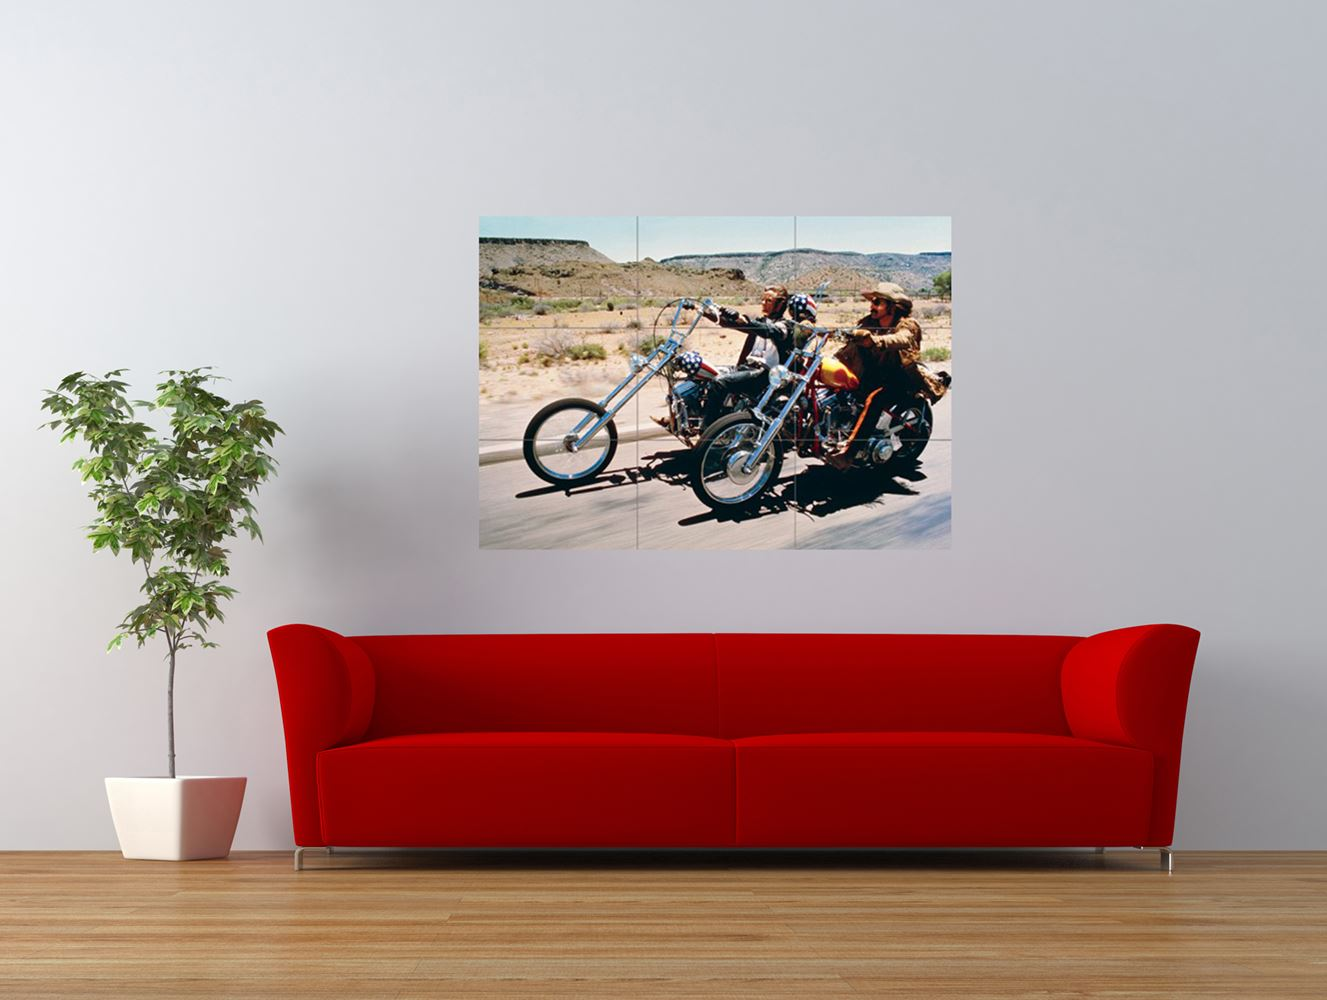 easy rider film fonda hopper lowrider bike giant art print panel poster nor0654 ebay. Black Bedroom Furniture Sets. Home Design Ideas